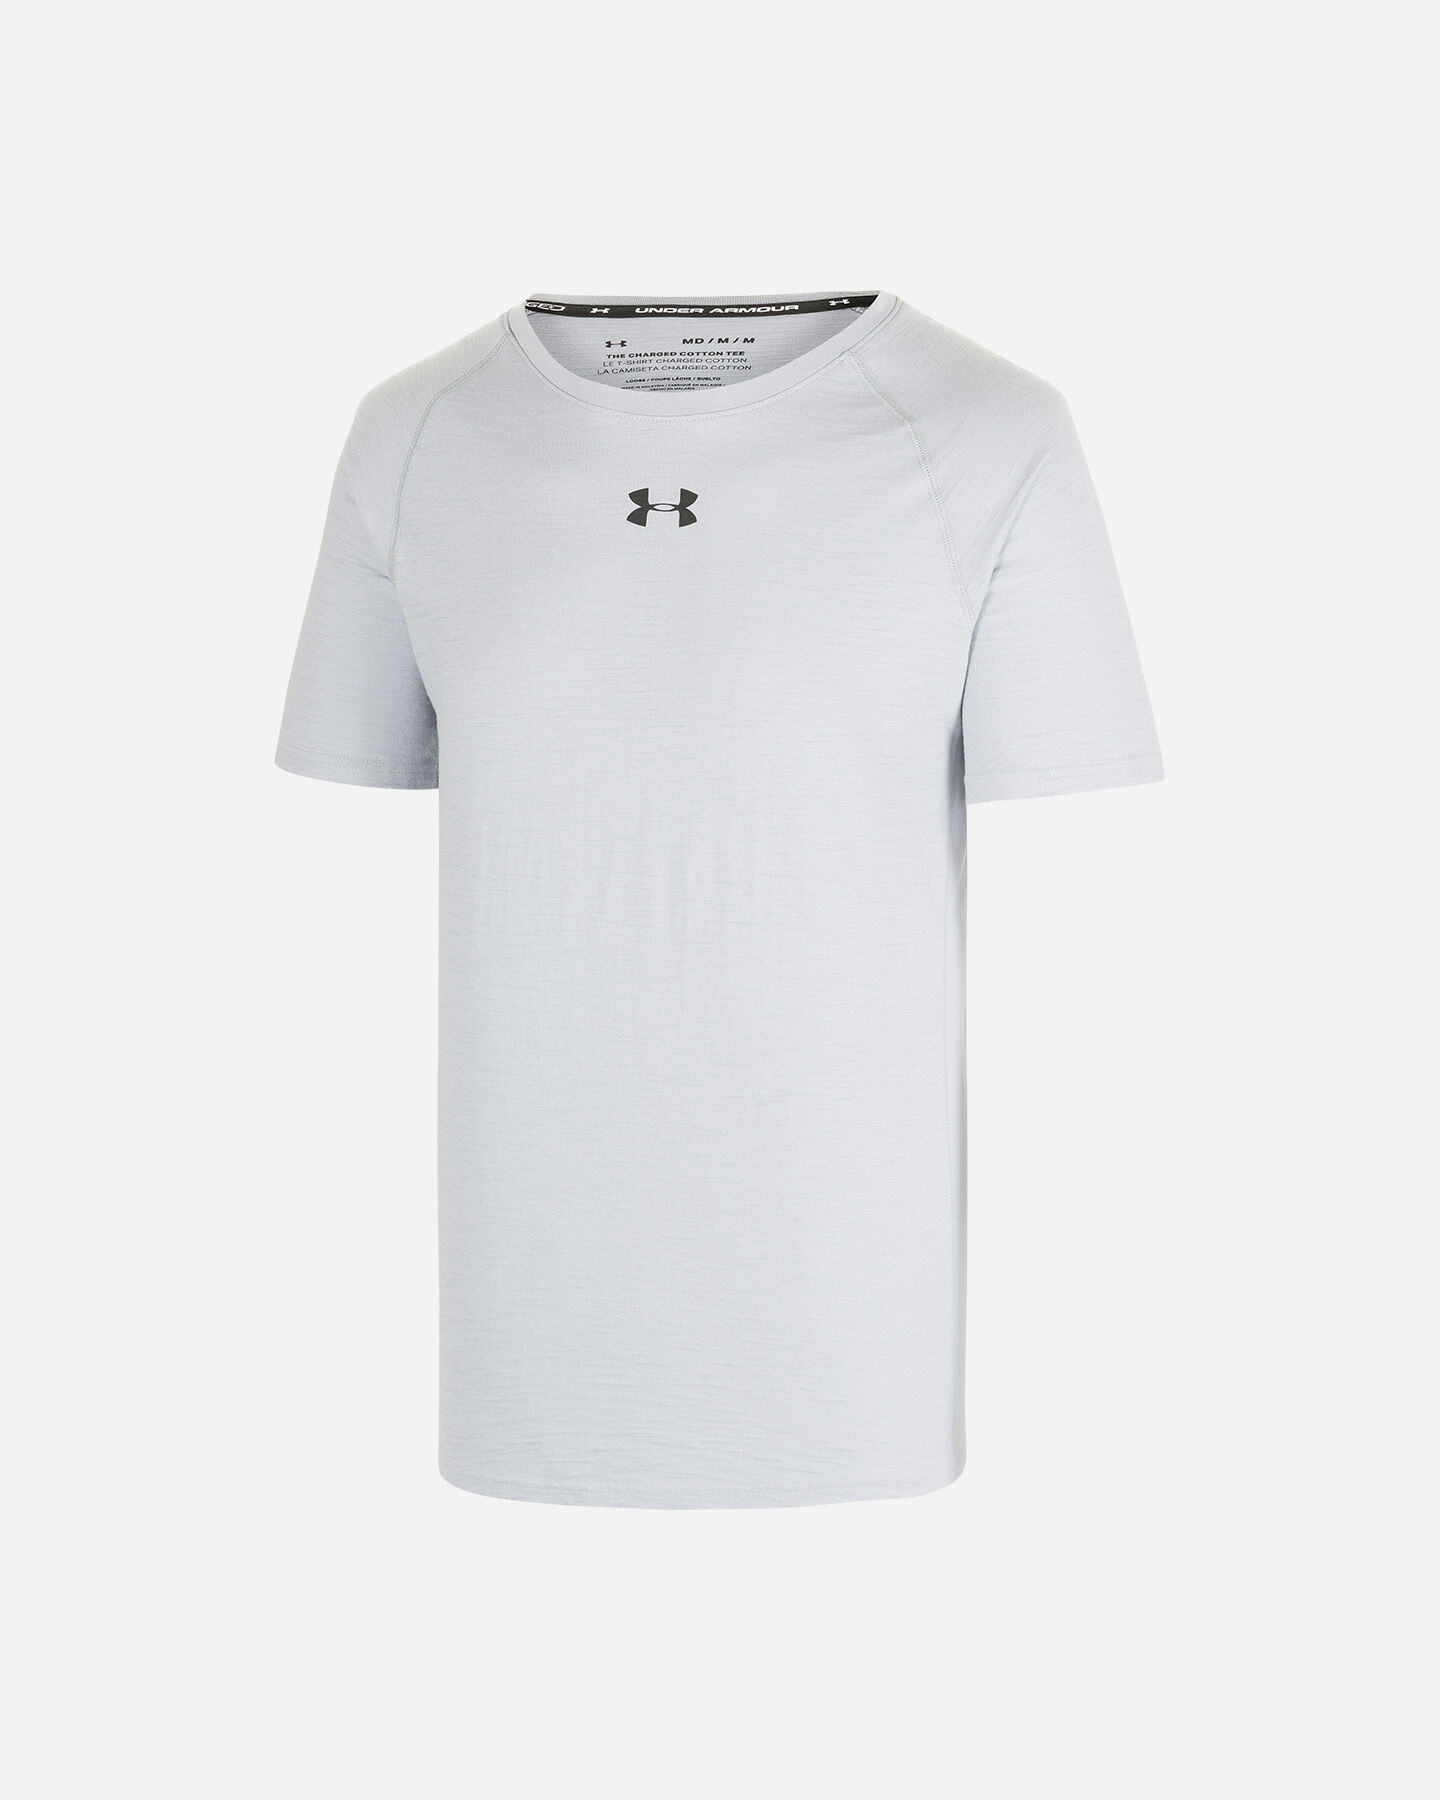 T-Shirt training UNDER ARMOUR CHARGED M S5169036 scatto 0